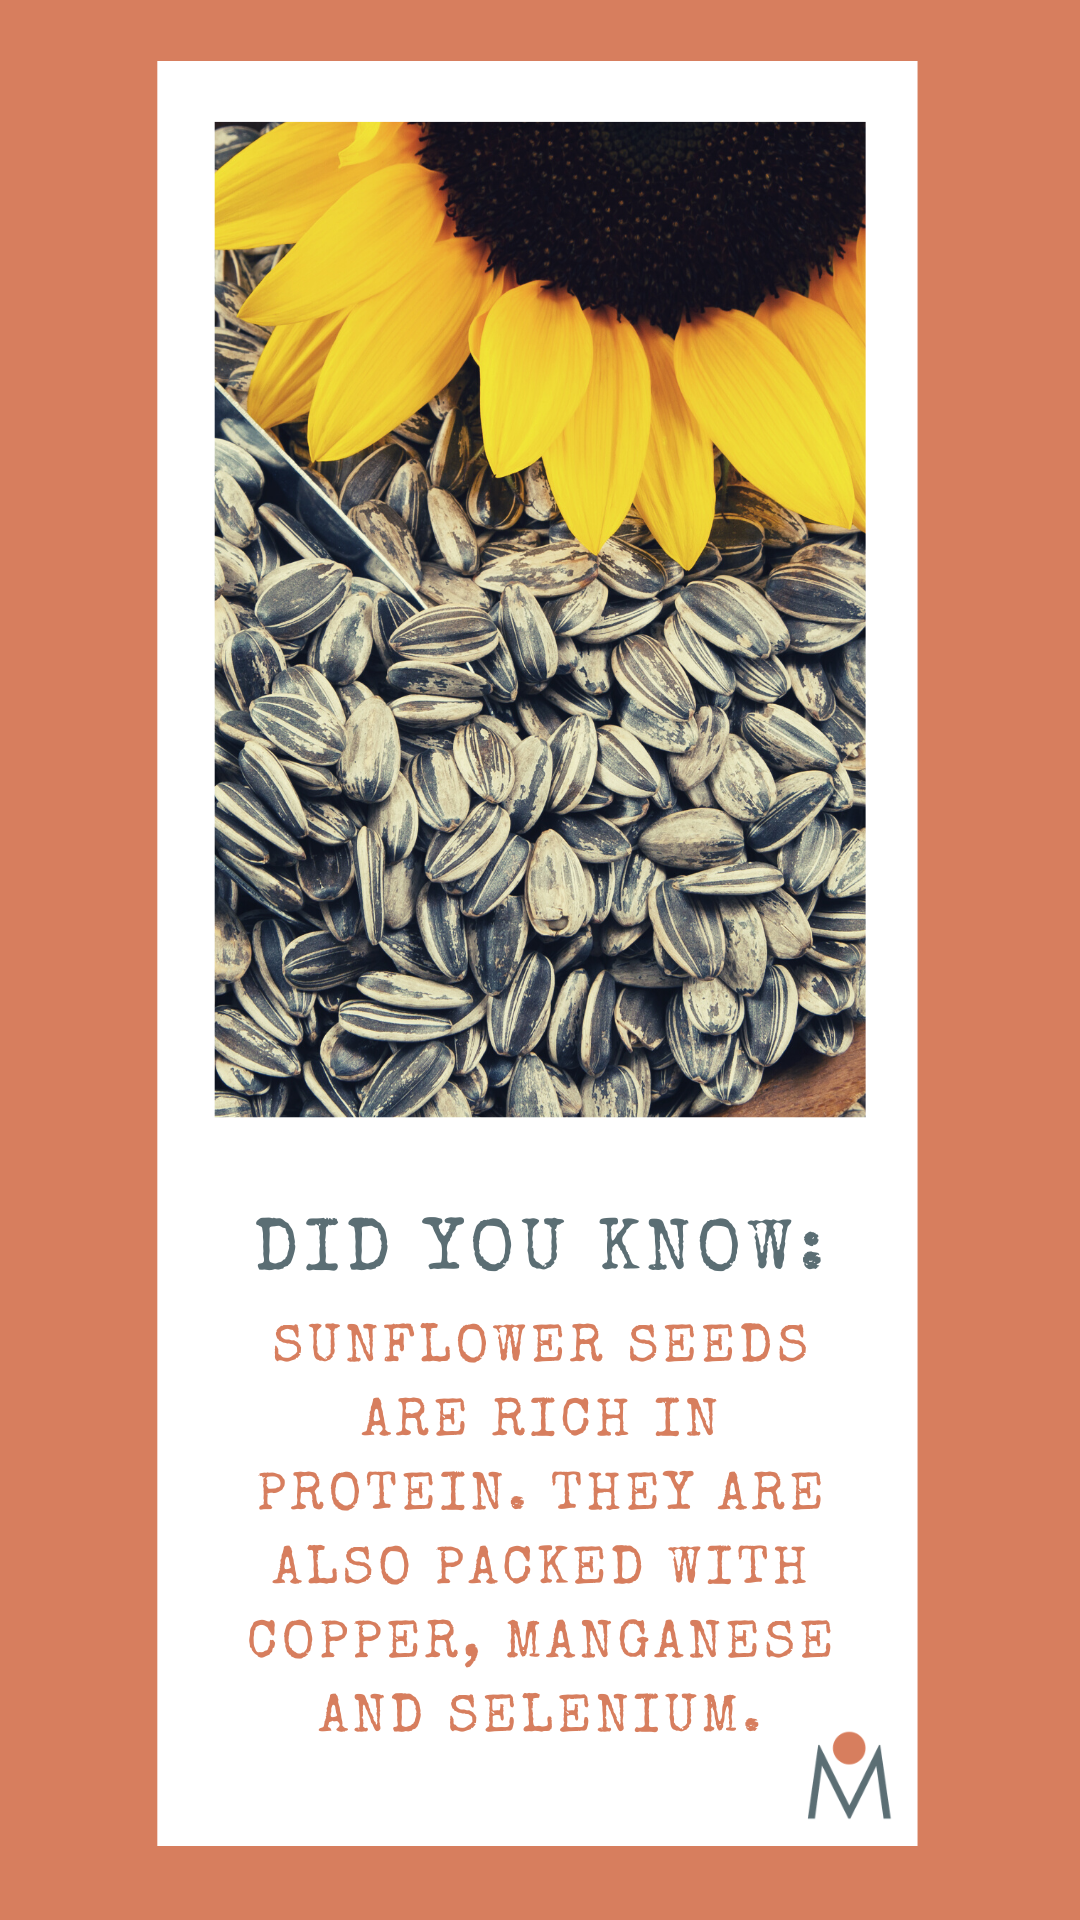 The Benefits Of Sunflower Seeds In 2020 Sunflower Seeds Benefits Healthy Living Inspiration Nutritional Therapy